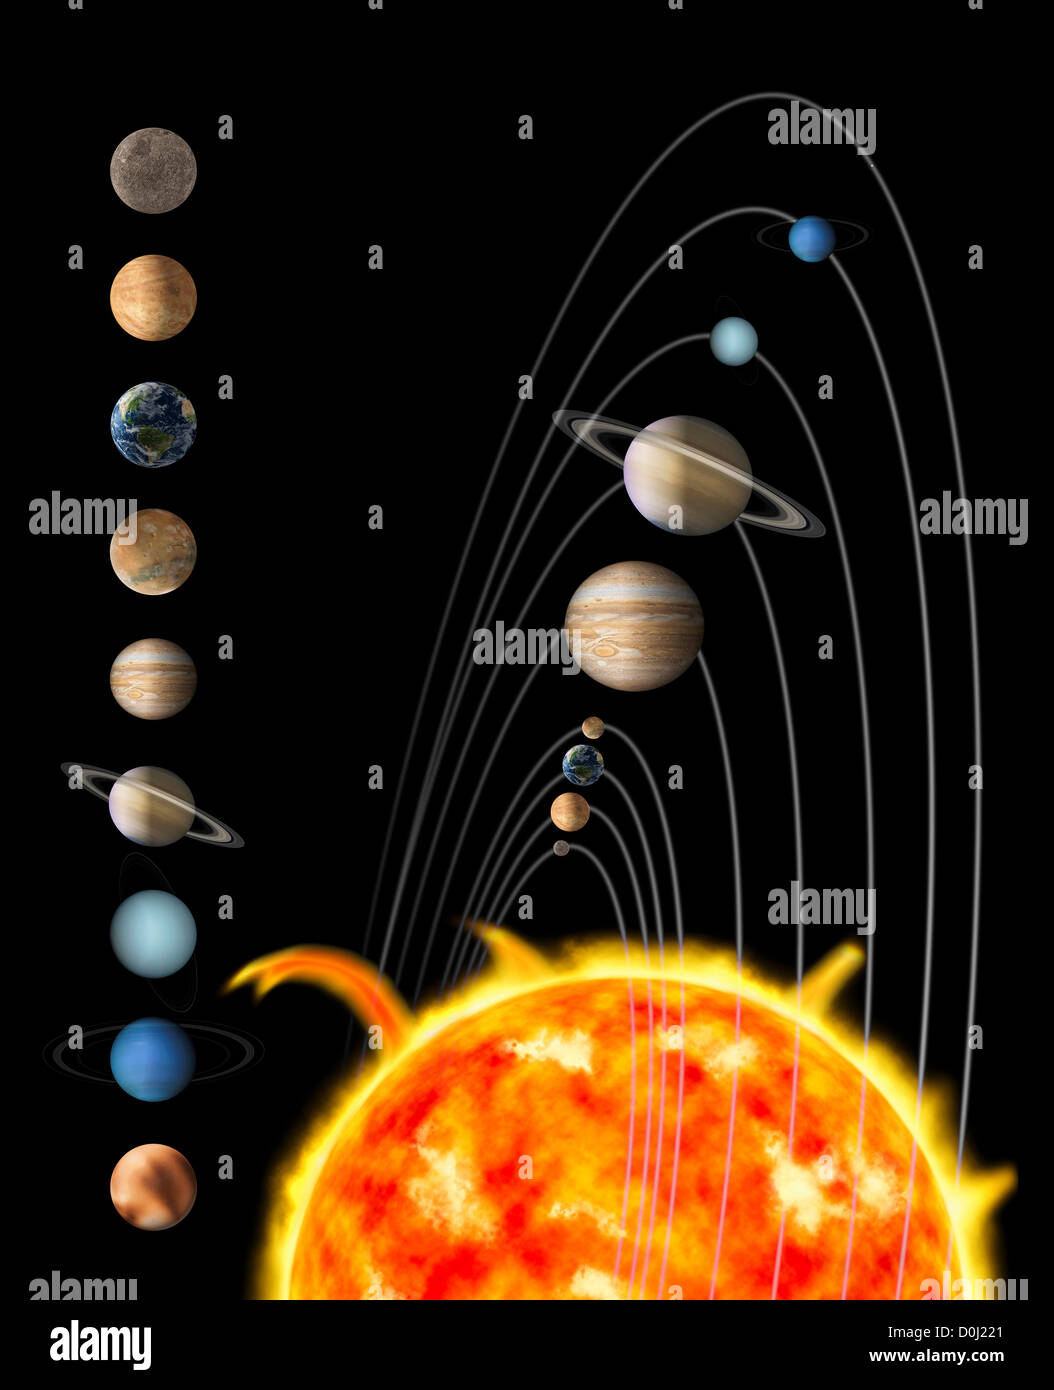 Digital Illustration Of The Sun And Nine Planets Of Our